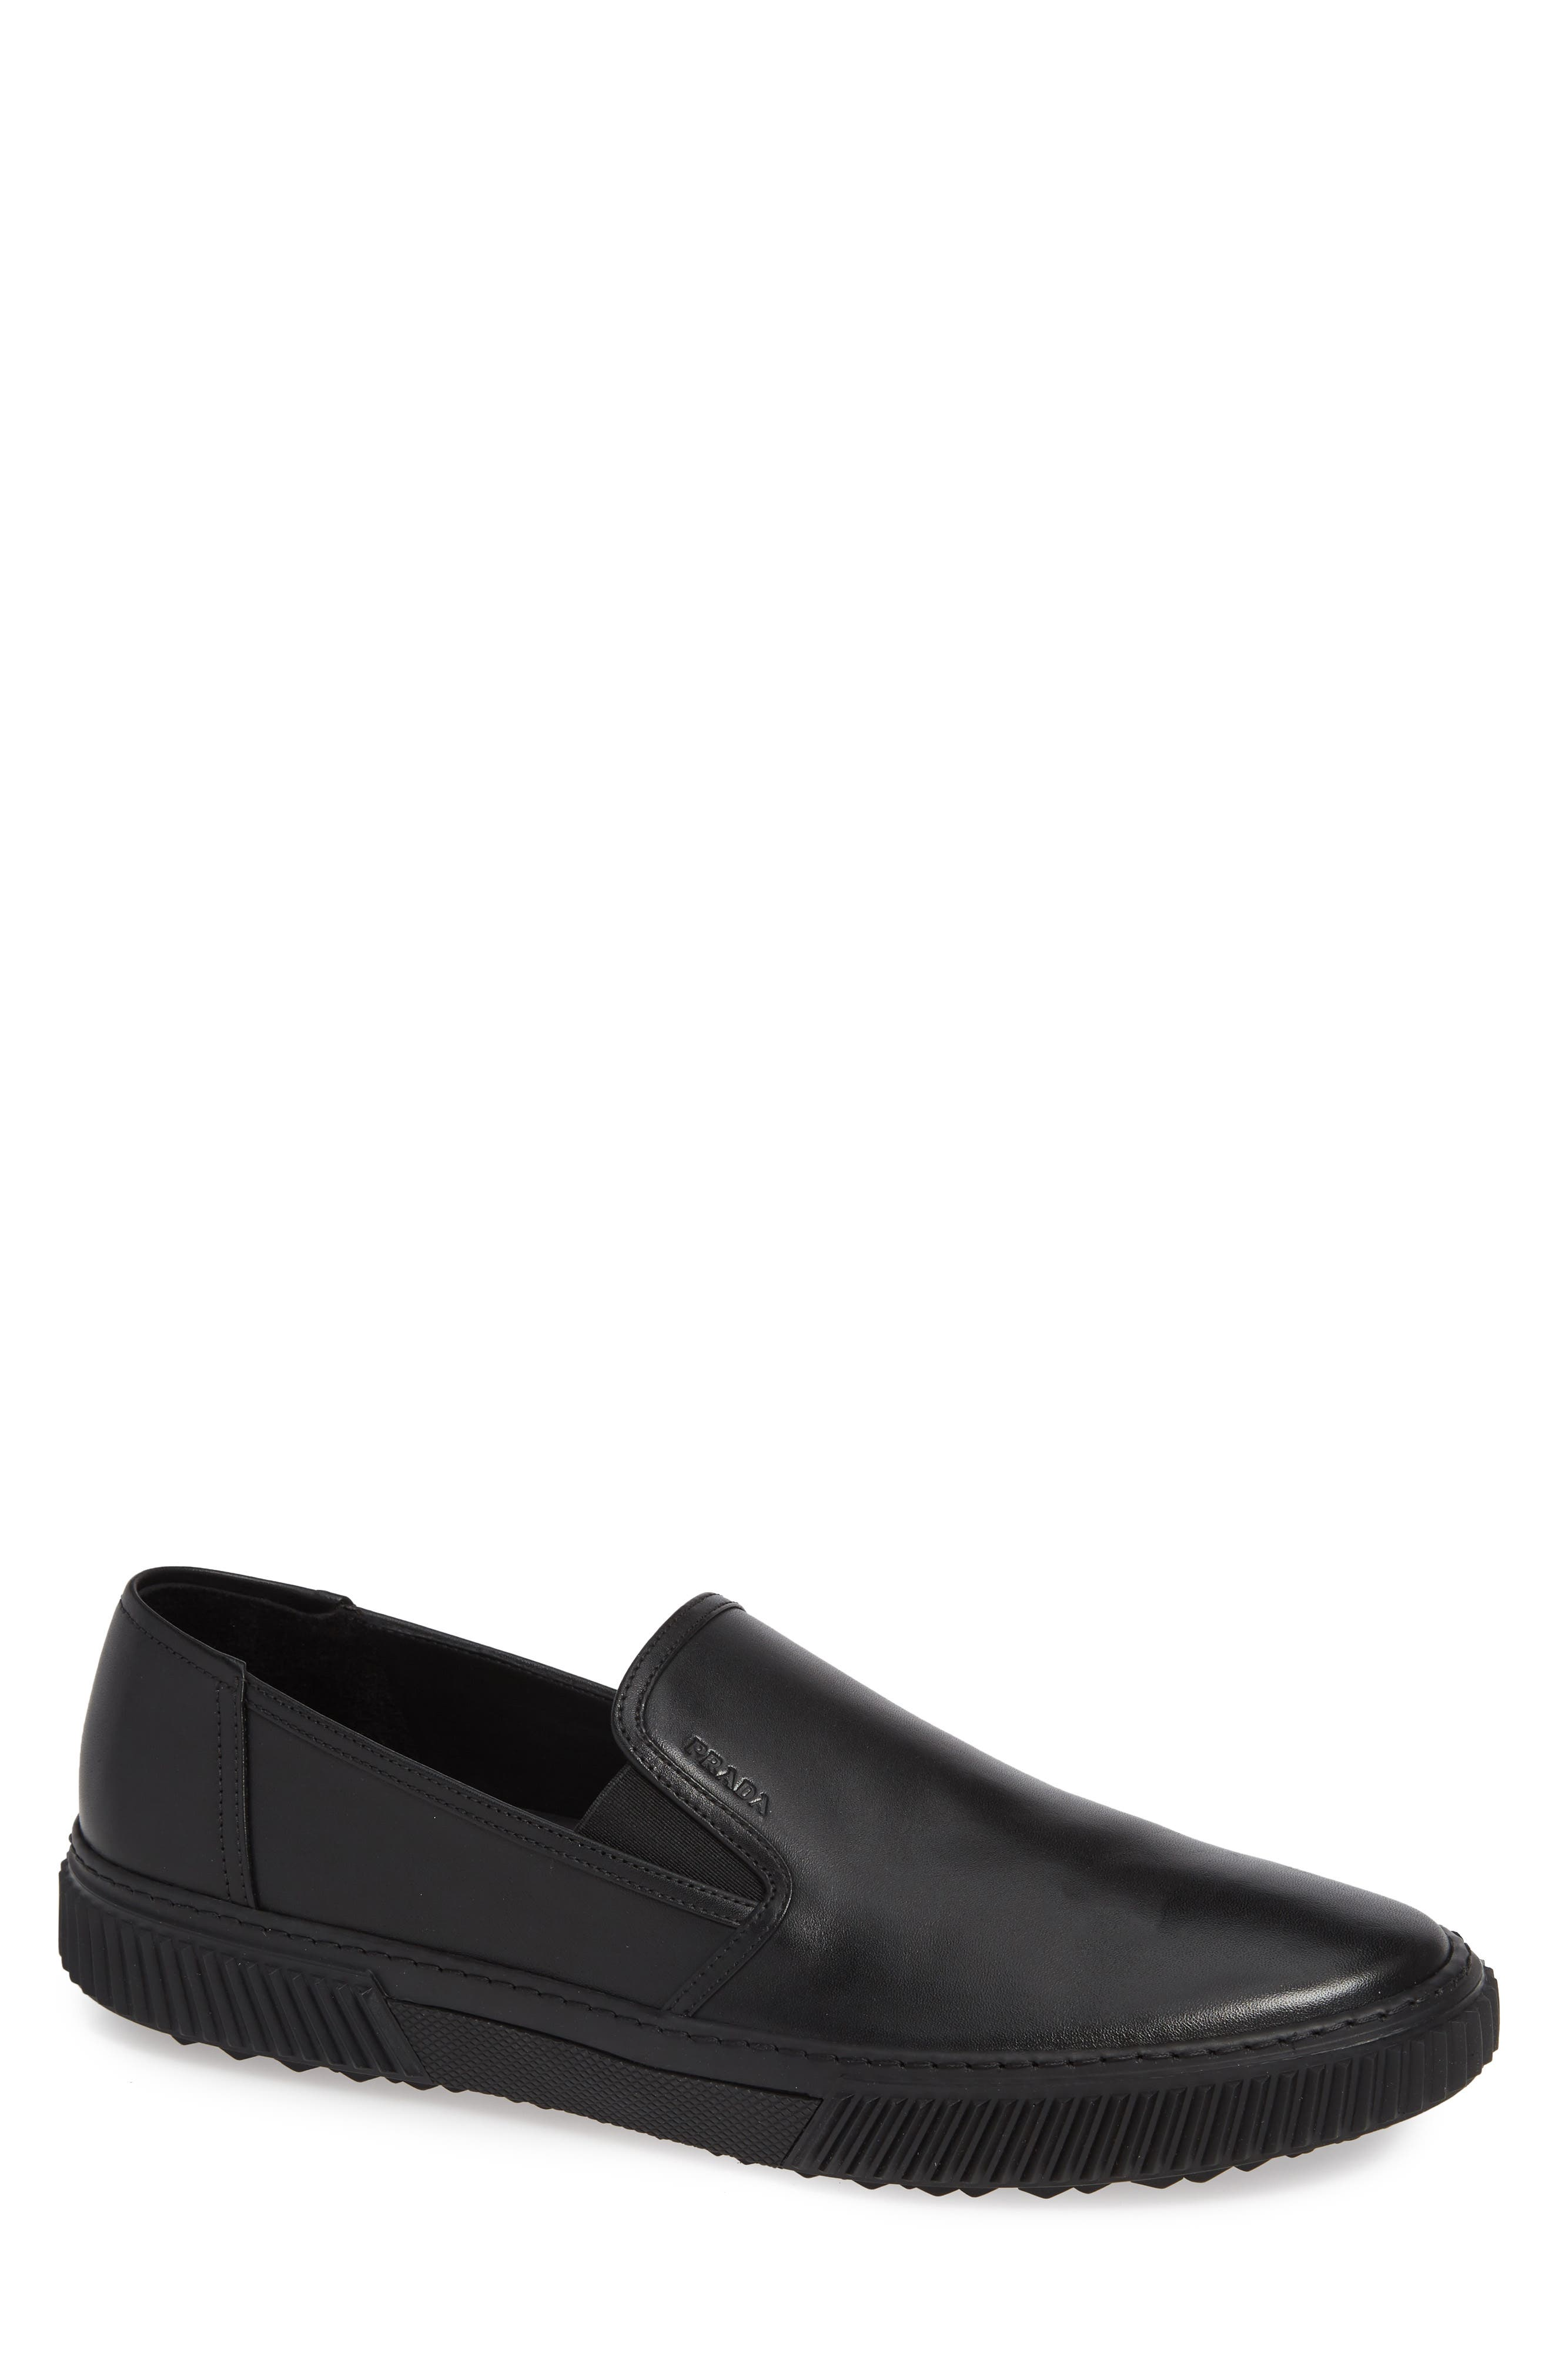 Stratus Slip-On Sneaker,                         Main,                         color, NERO/ NERO